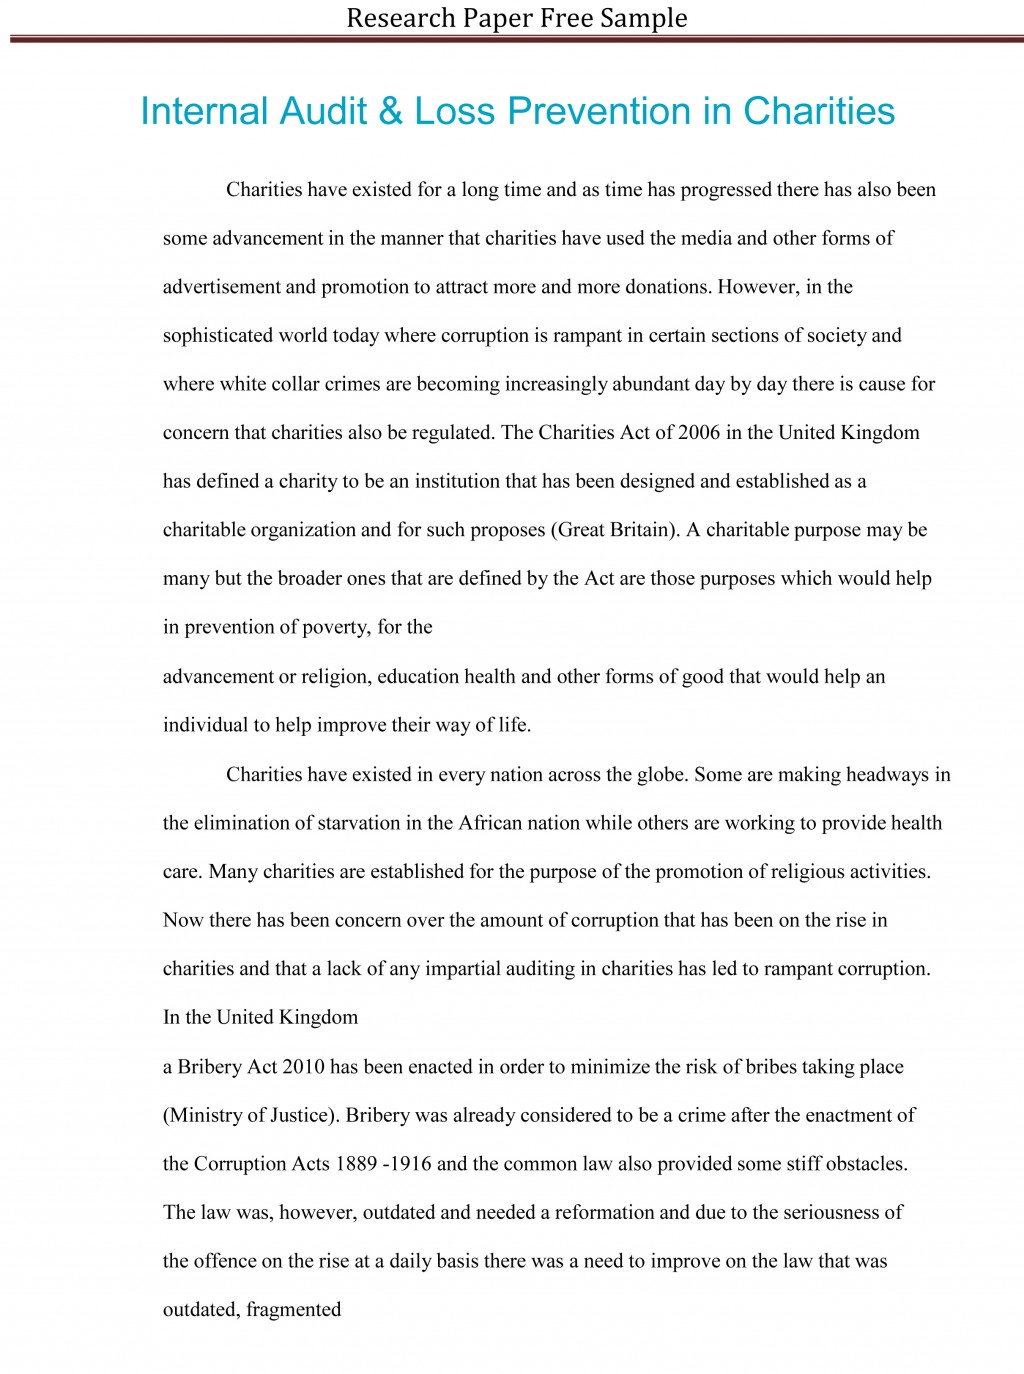 010 Writing An Introduction To Research Paper Help Paragraph Top A The Scientific Middle School For Large